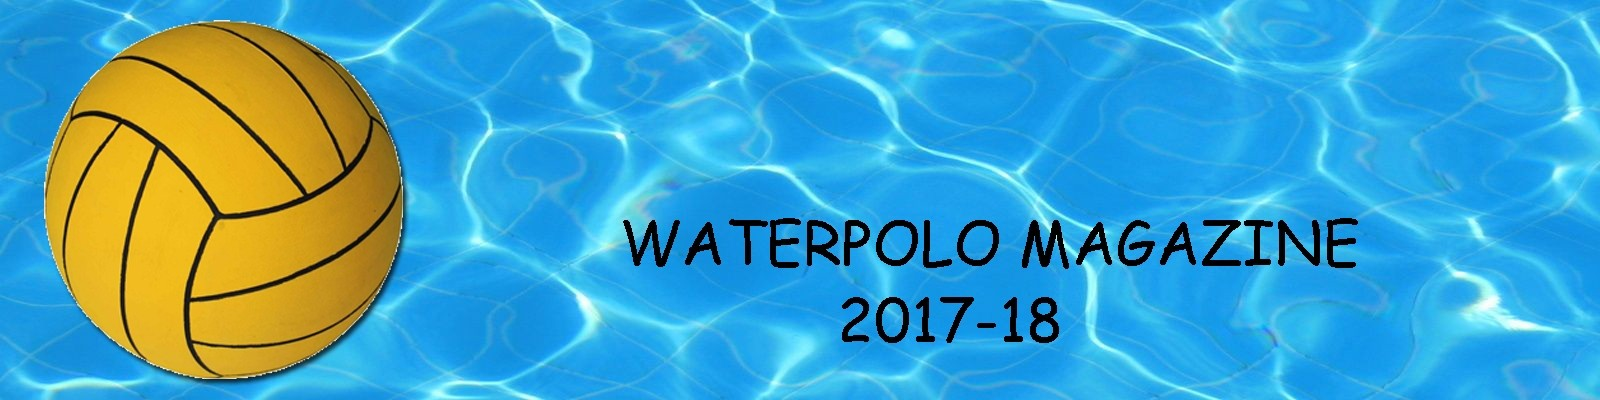 Waterpolo Magazine anno 2017-18